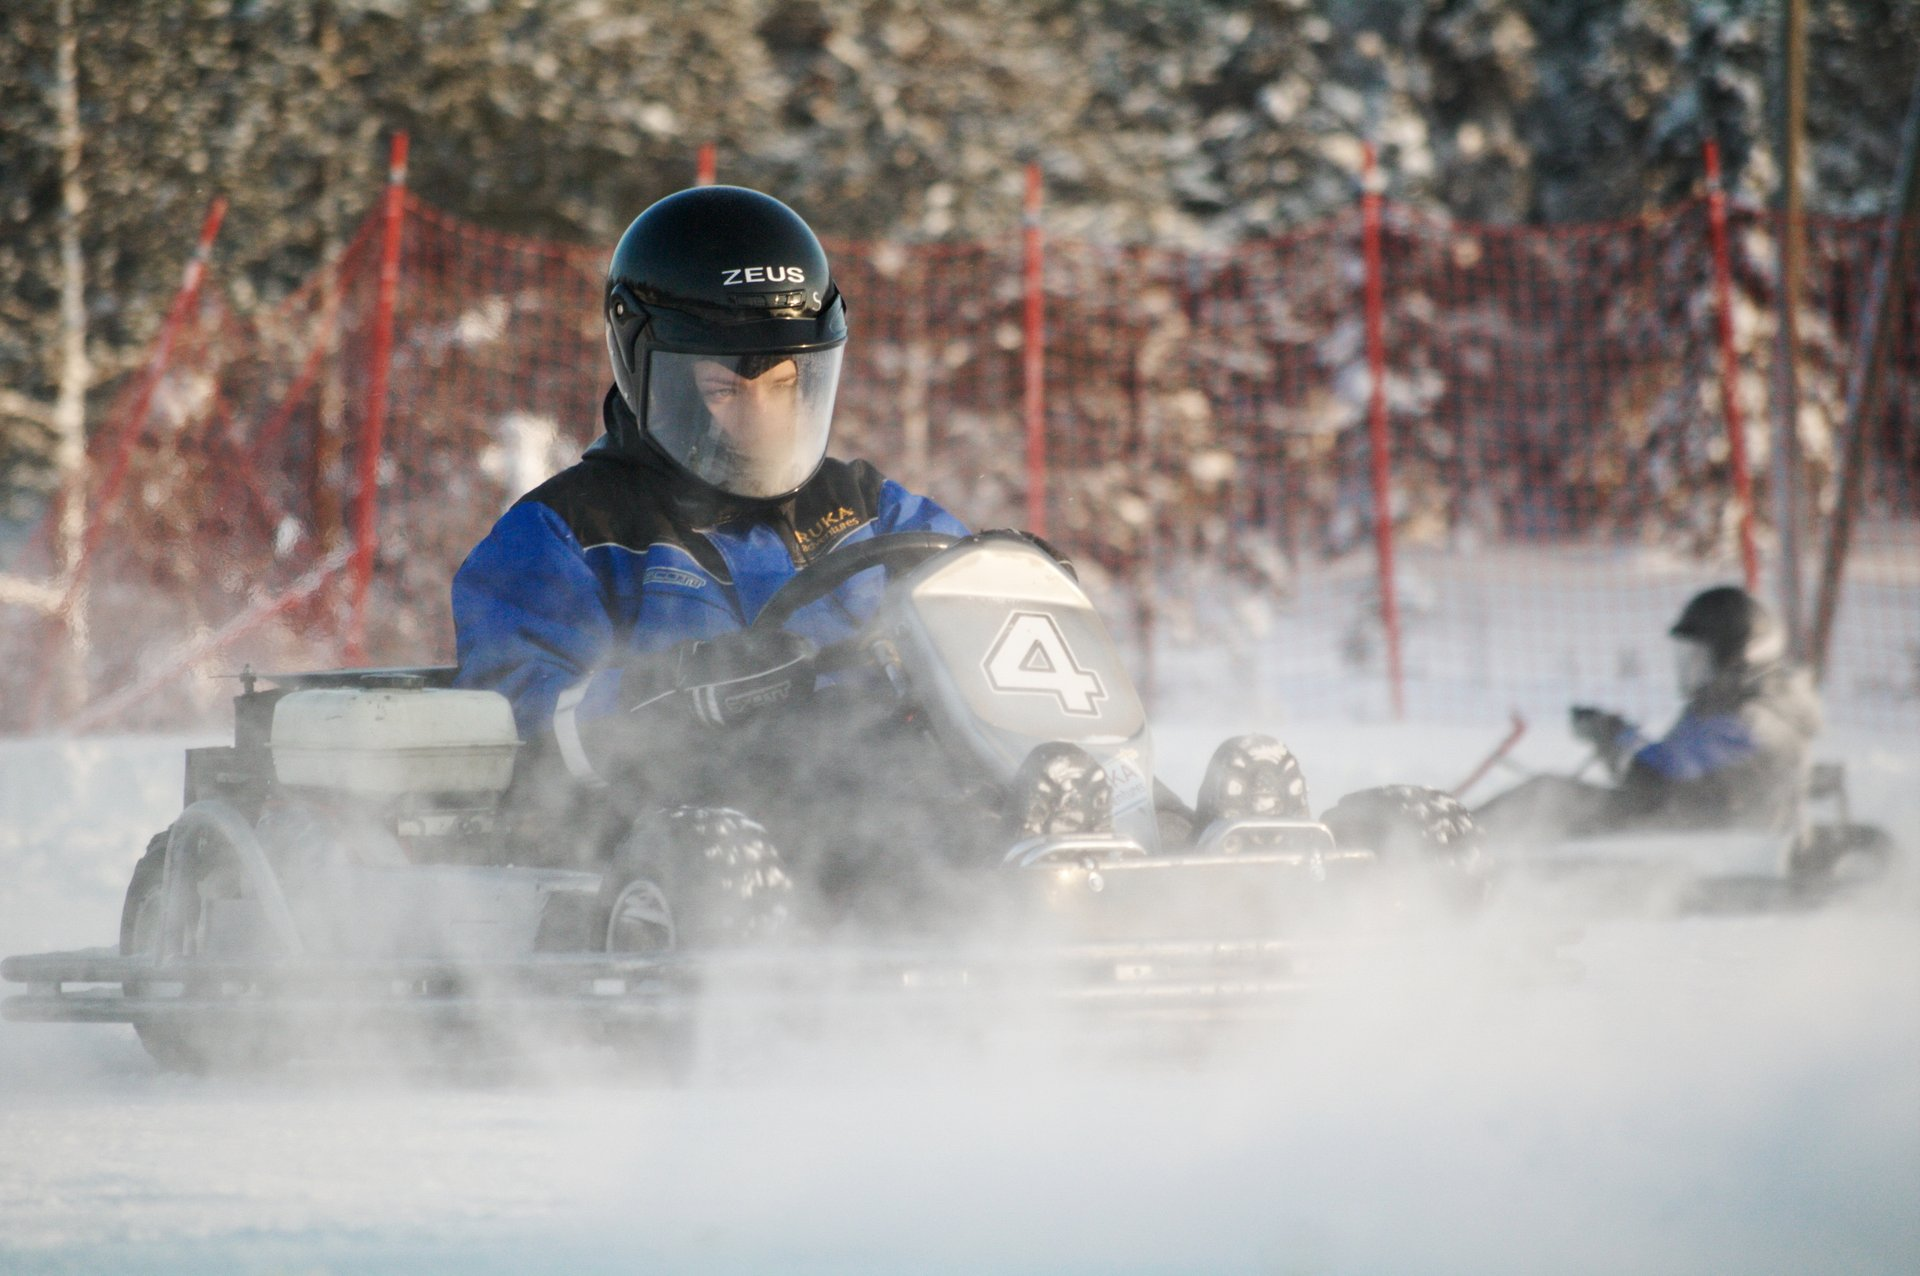 Ice Karting in Finland - Best Season 2020